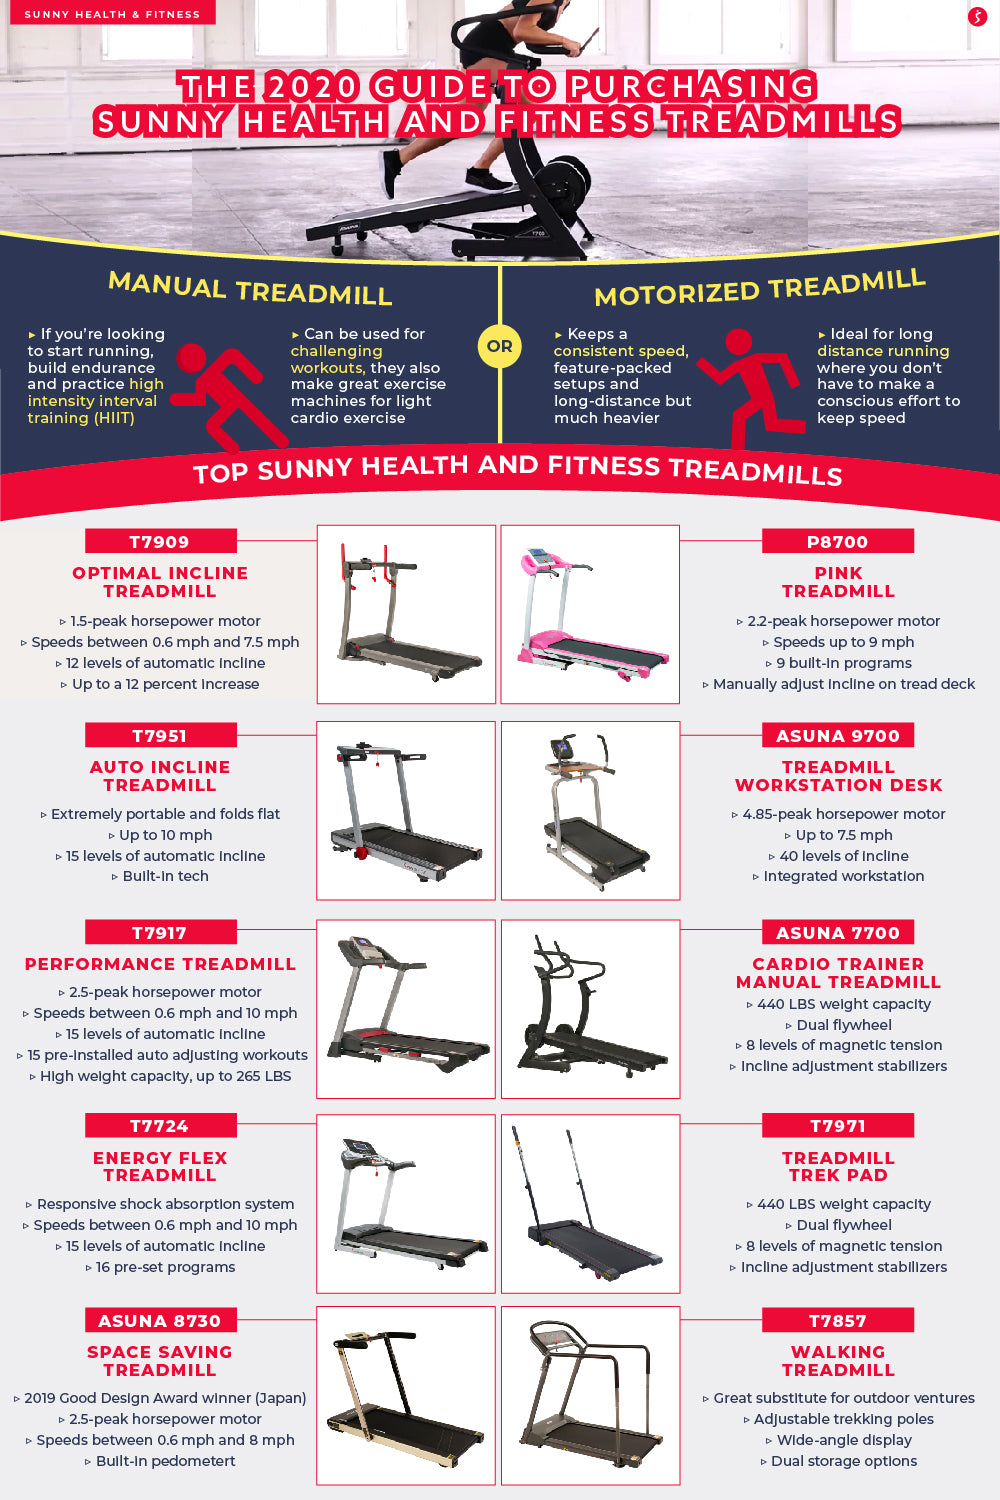 The 2020 Guide to Purchasing Sunny Health and Fitness Treadmills Infographic